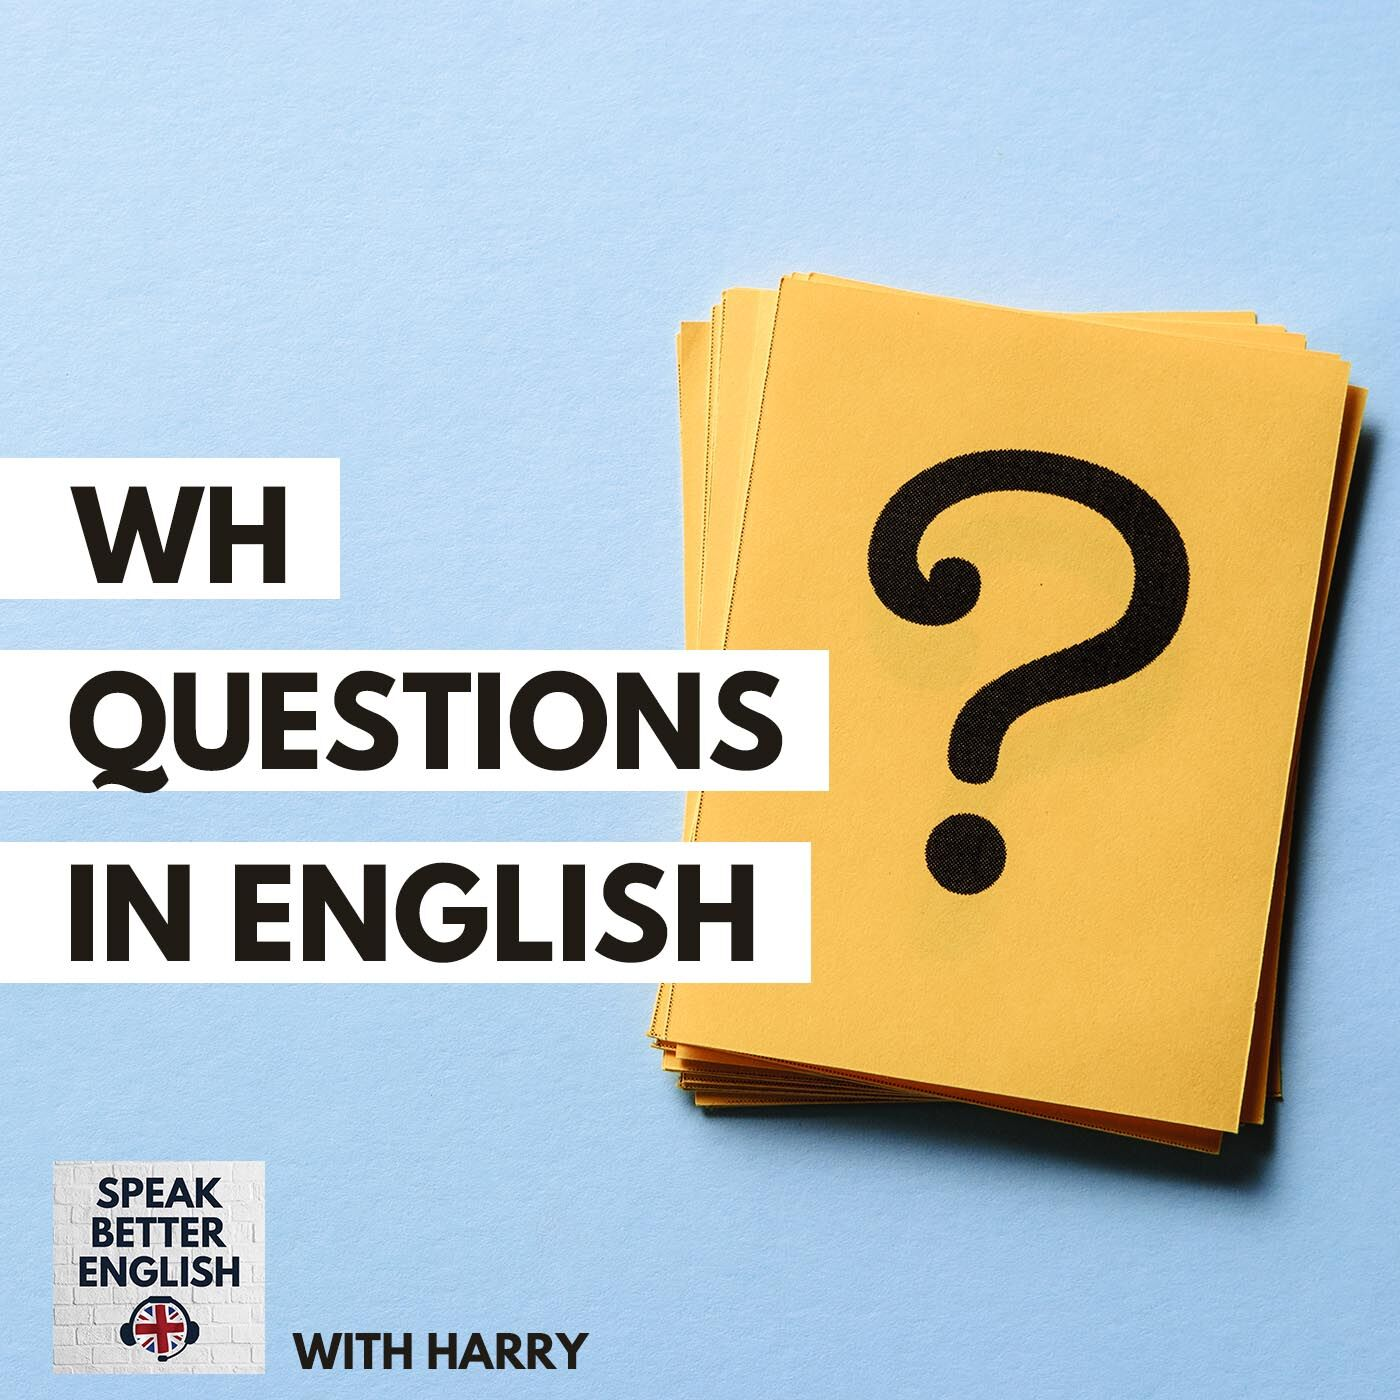 Speak Better English with Harry | WH Questions in English